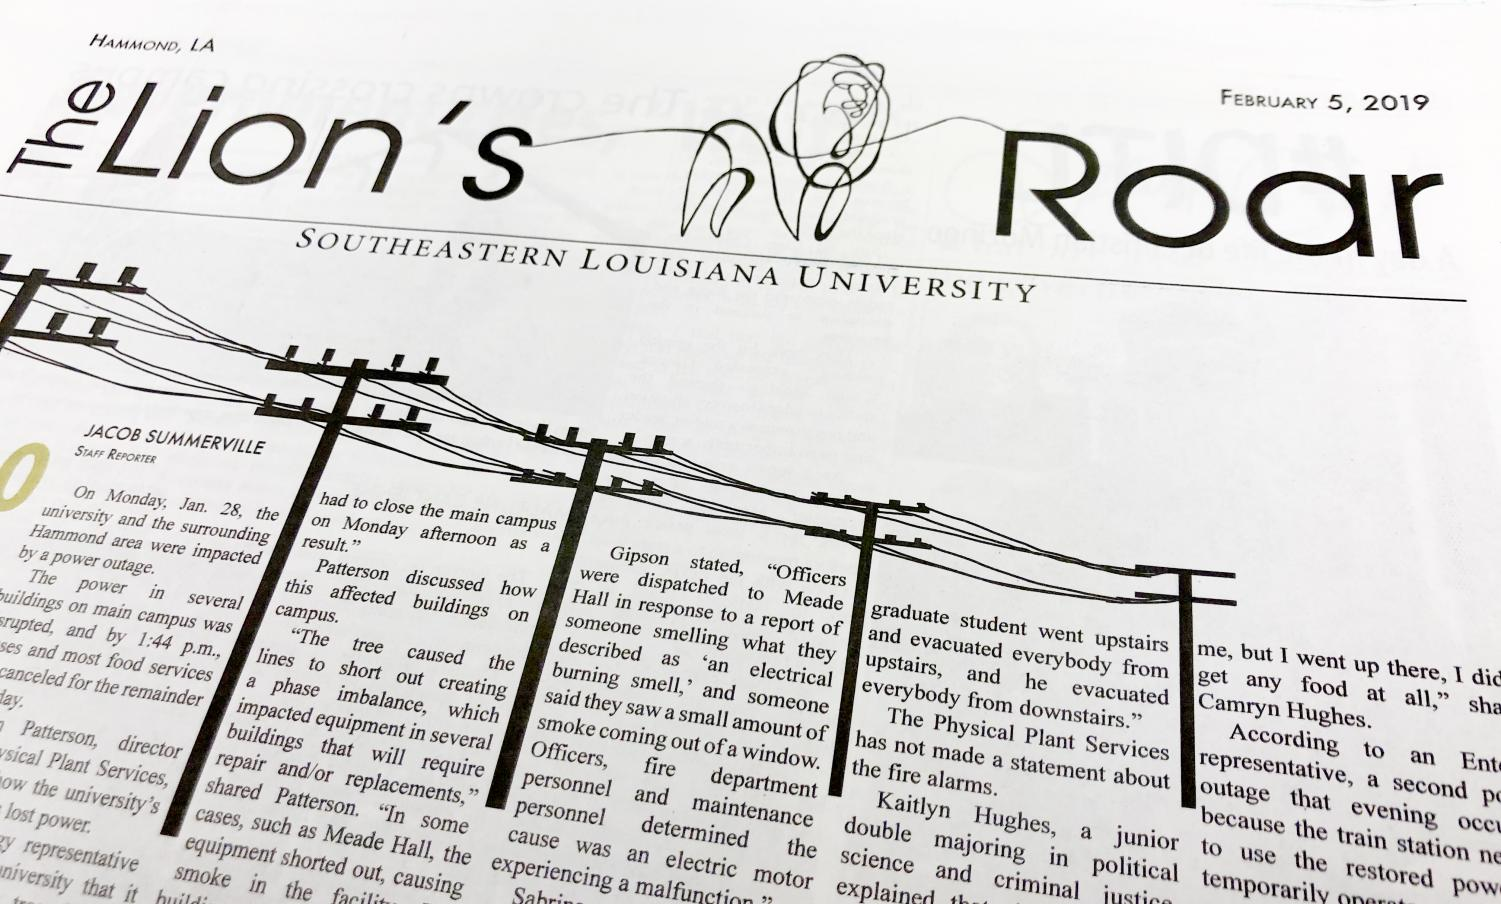 In addition to the new masthead, there are some other changes within the newspaper to take note of.